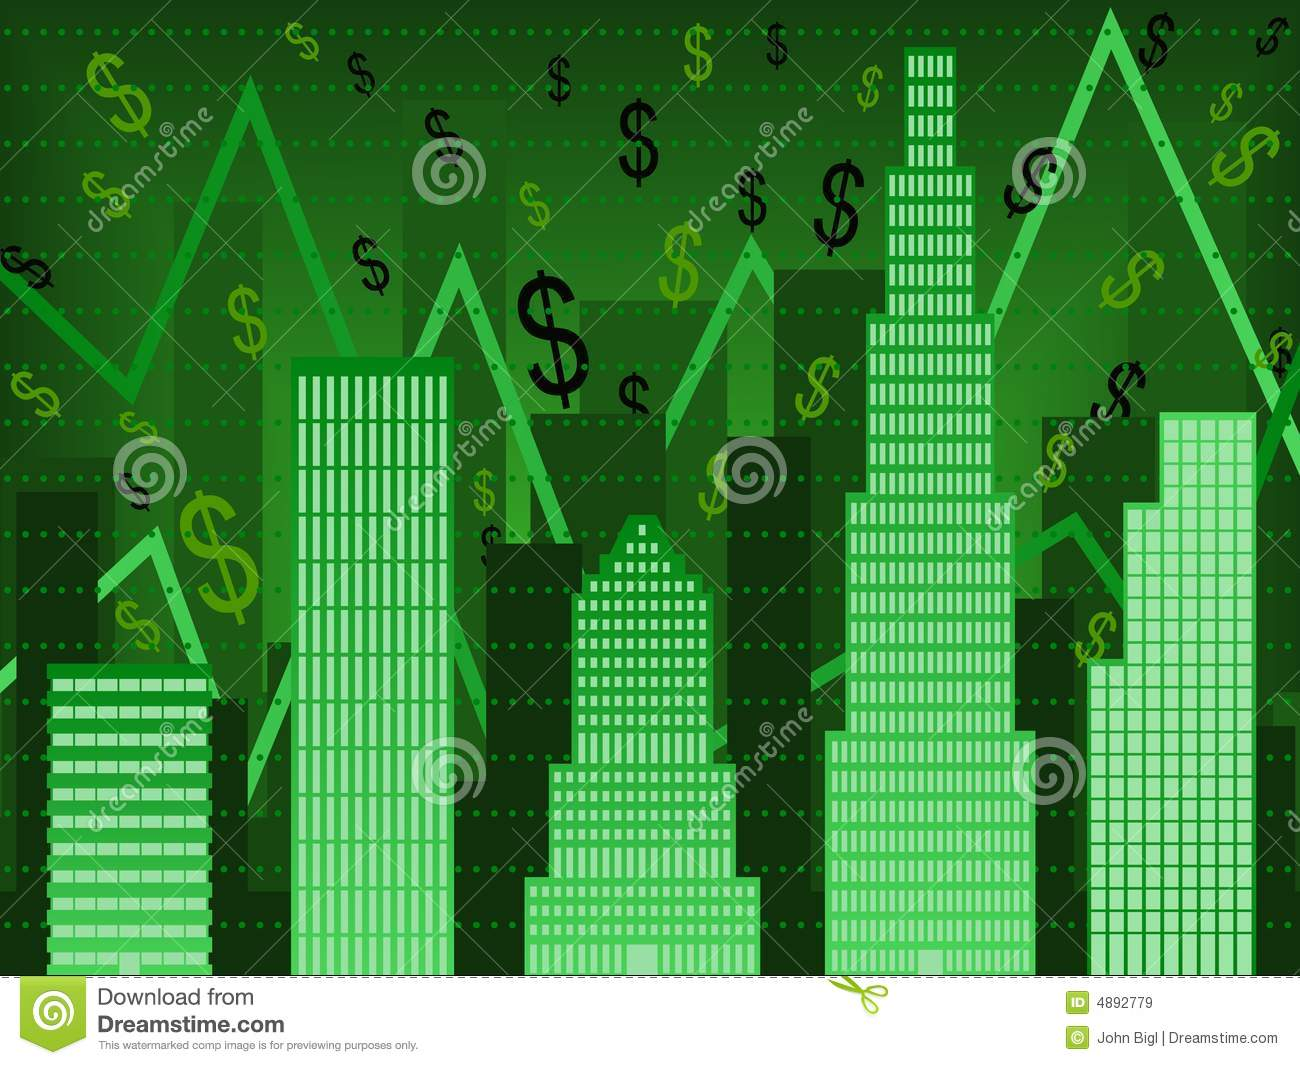 green finance Green finance has gained traction within the financial industry as it allows investors to combine financial return with environmental benefit.